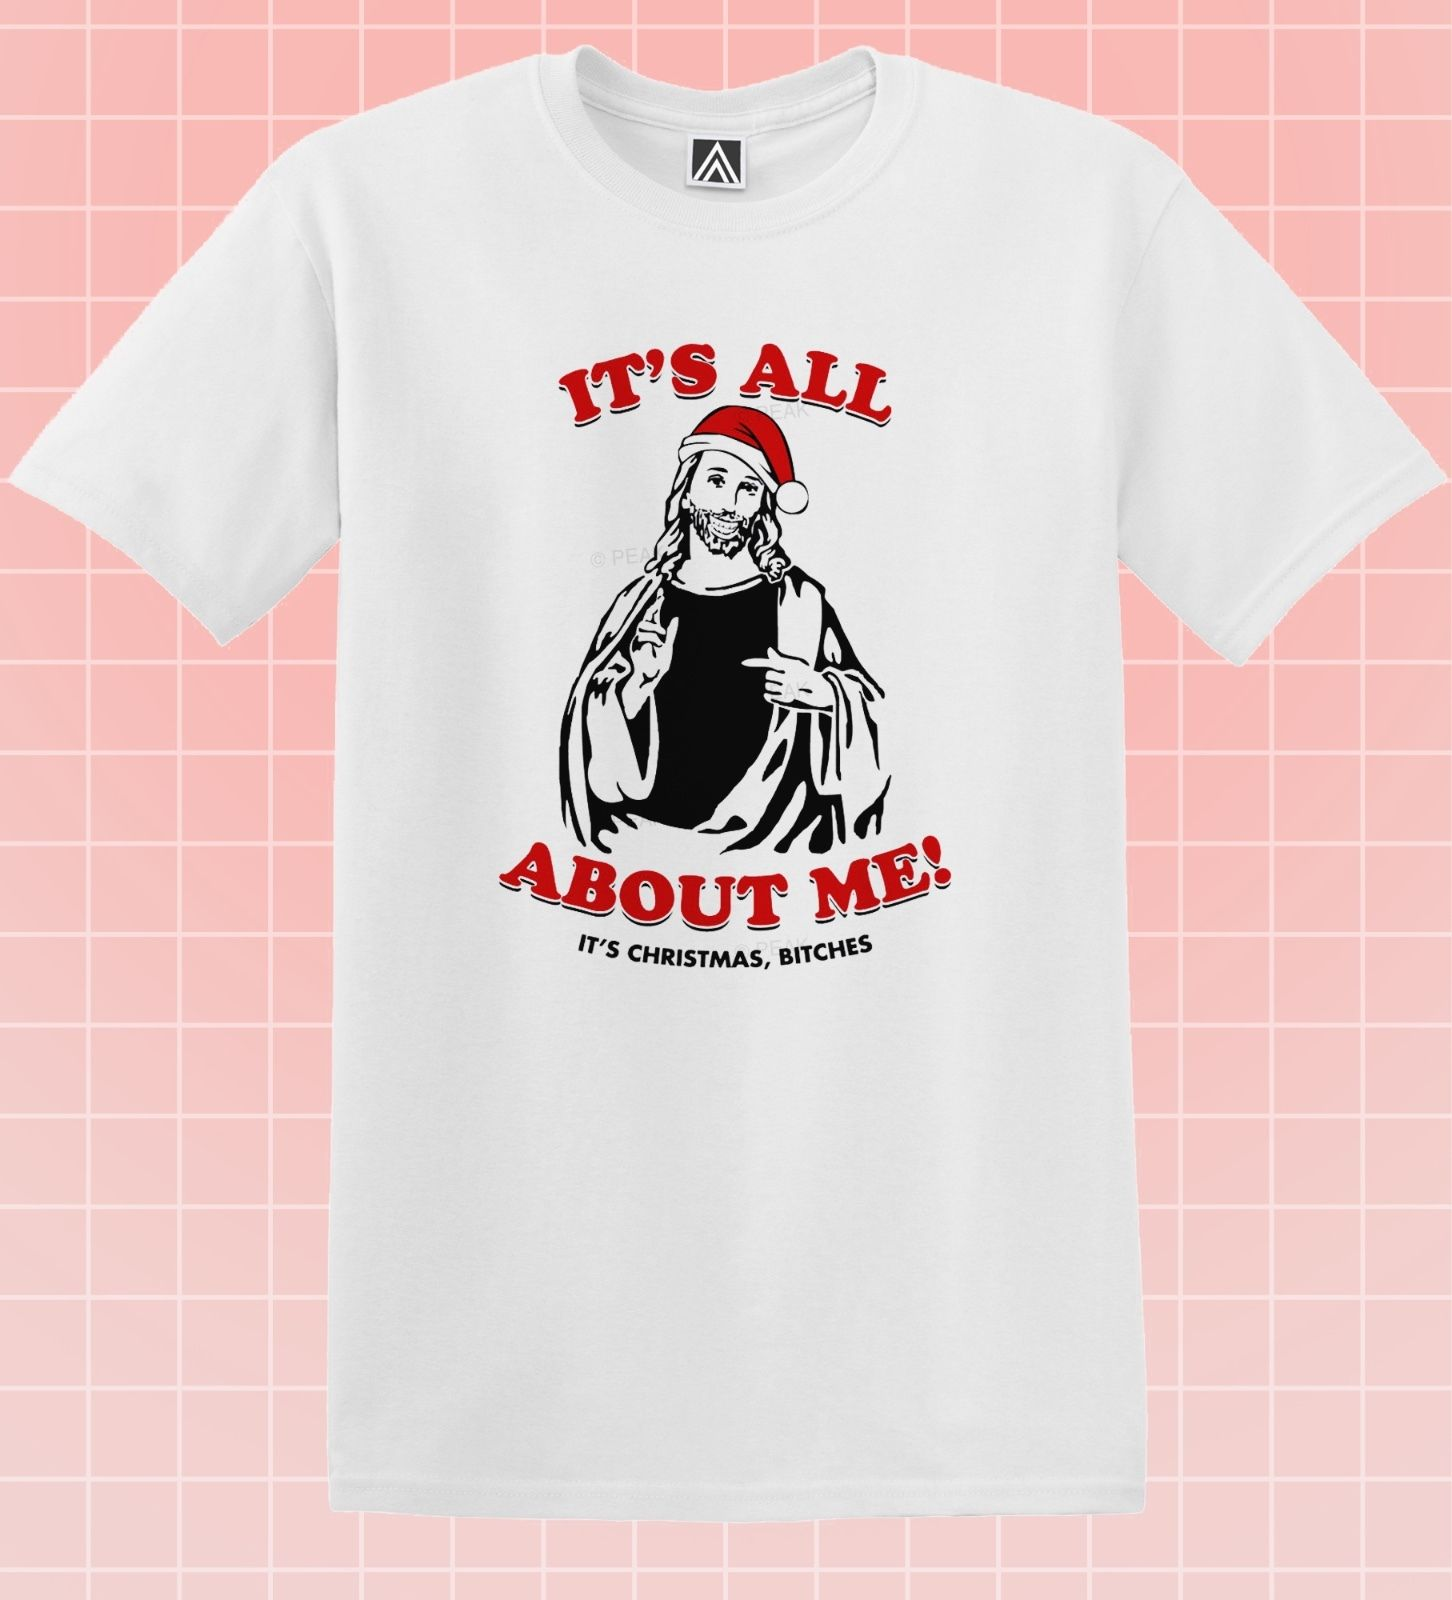 CHRISTMAS JESUS T-shirt Nativity Party Santa Bitch Tee Hipster Gift Novelty Top